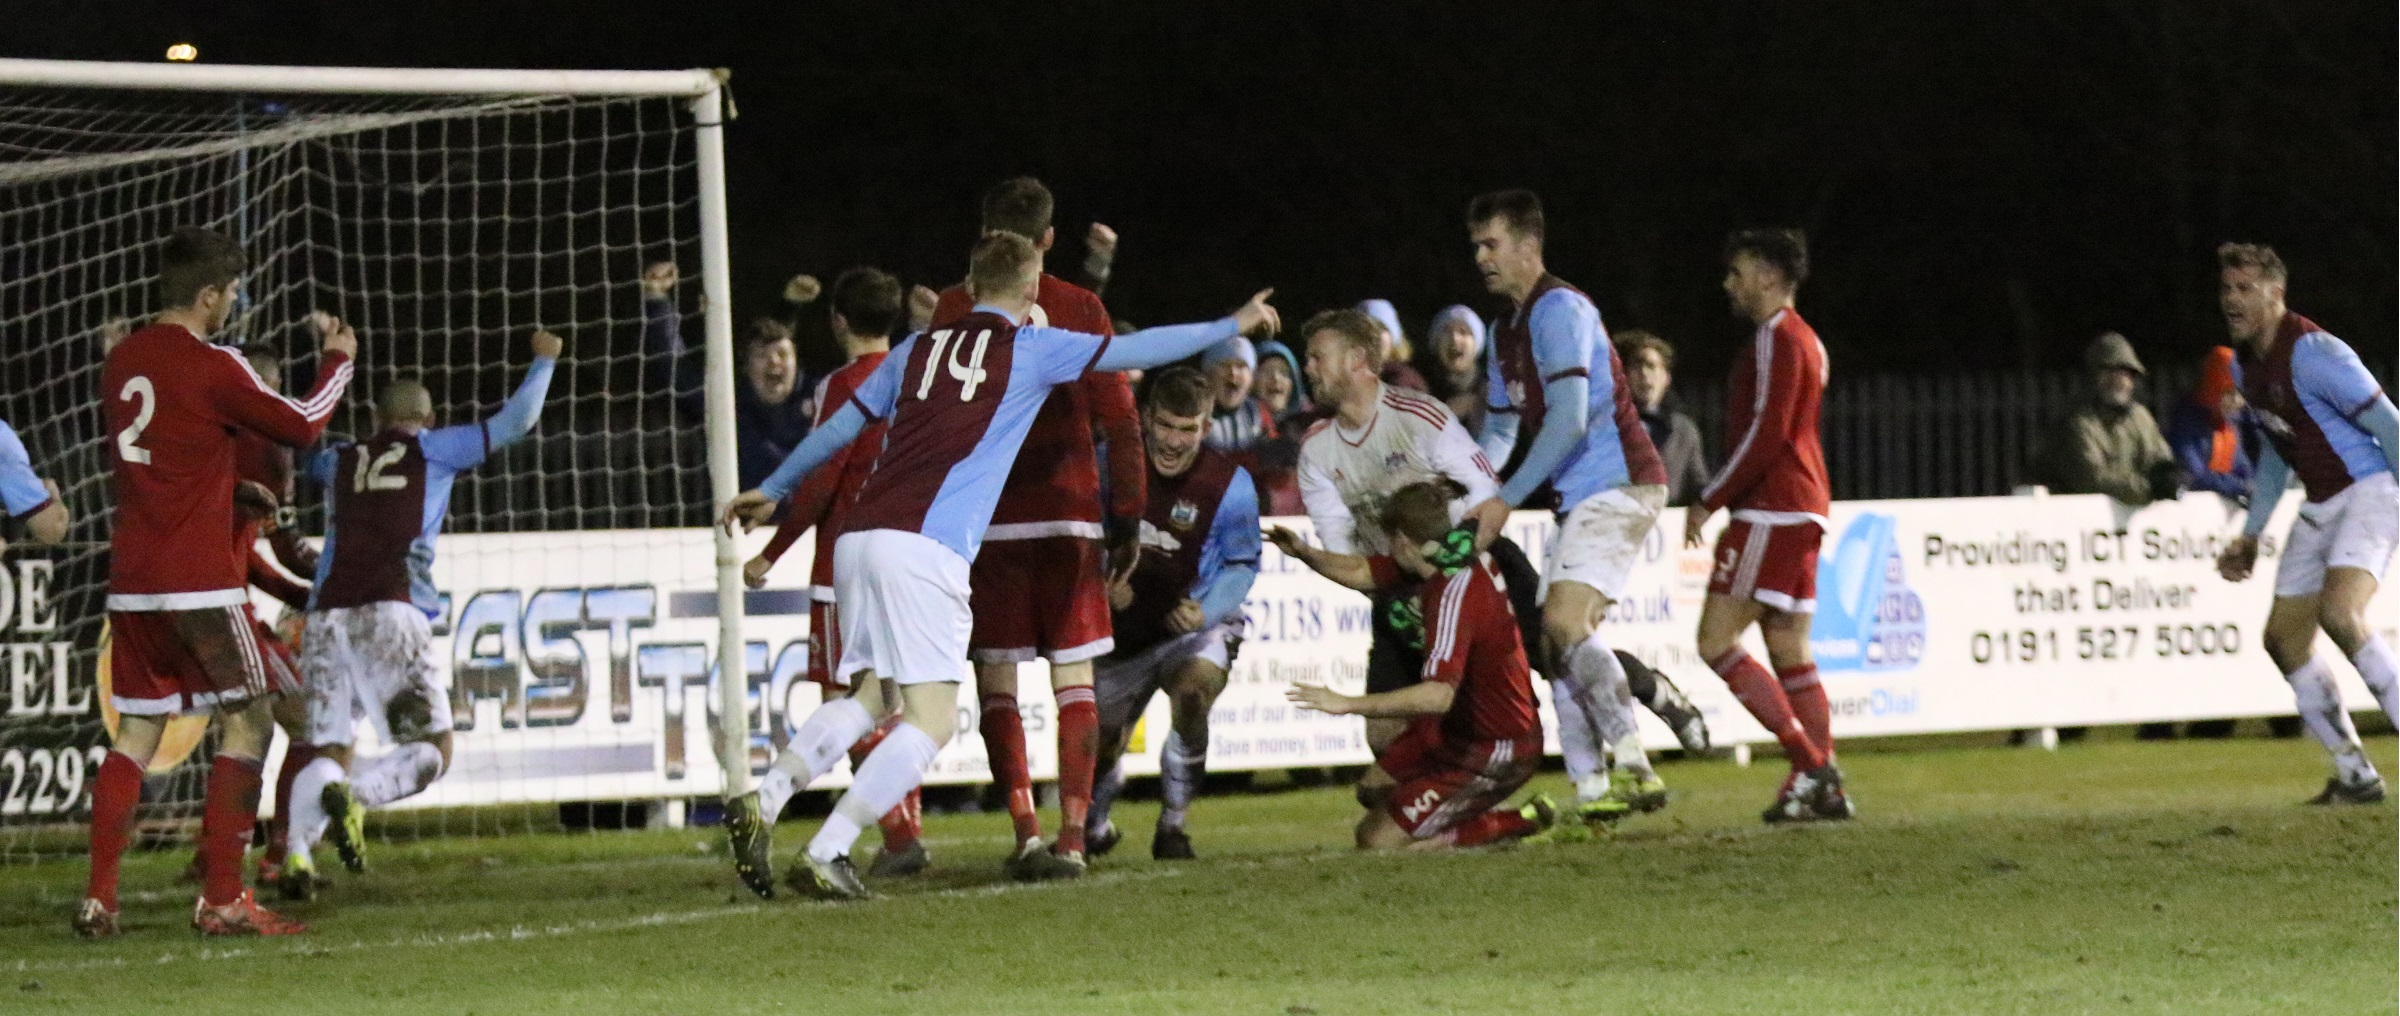 South Shields 2-2 Newton Aycliffe (1-3 on penalties)